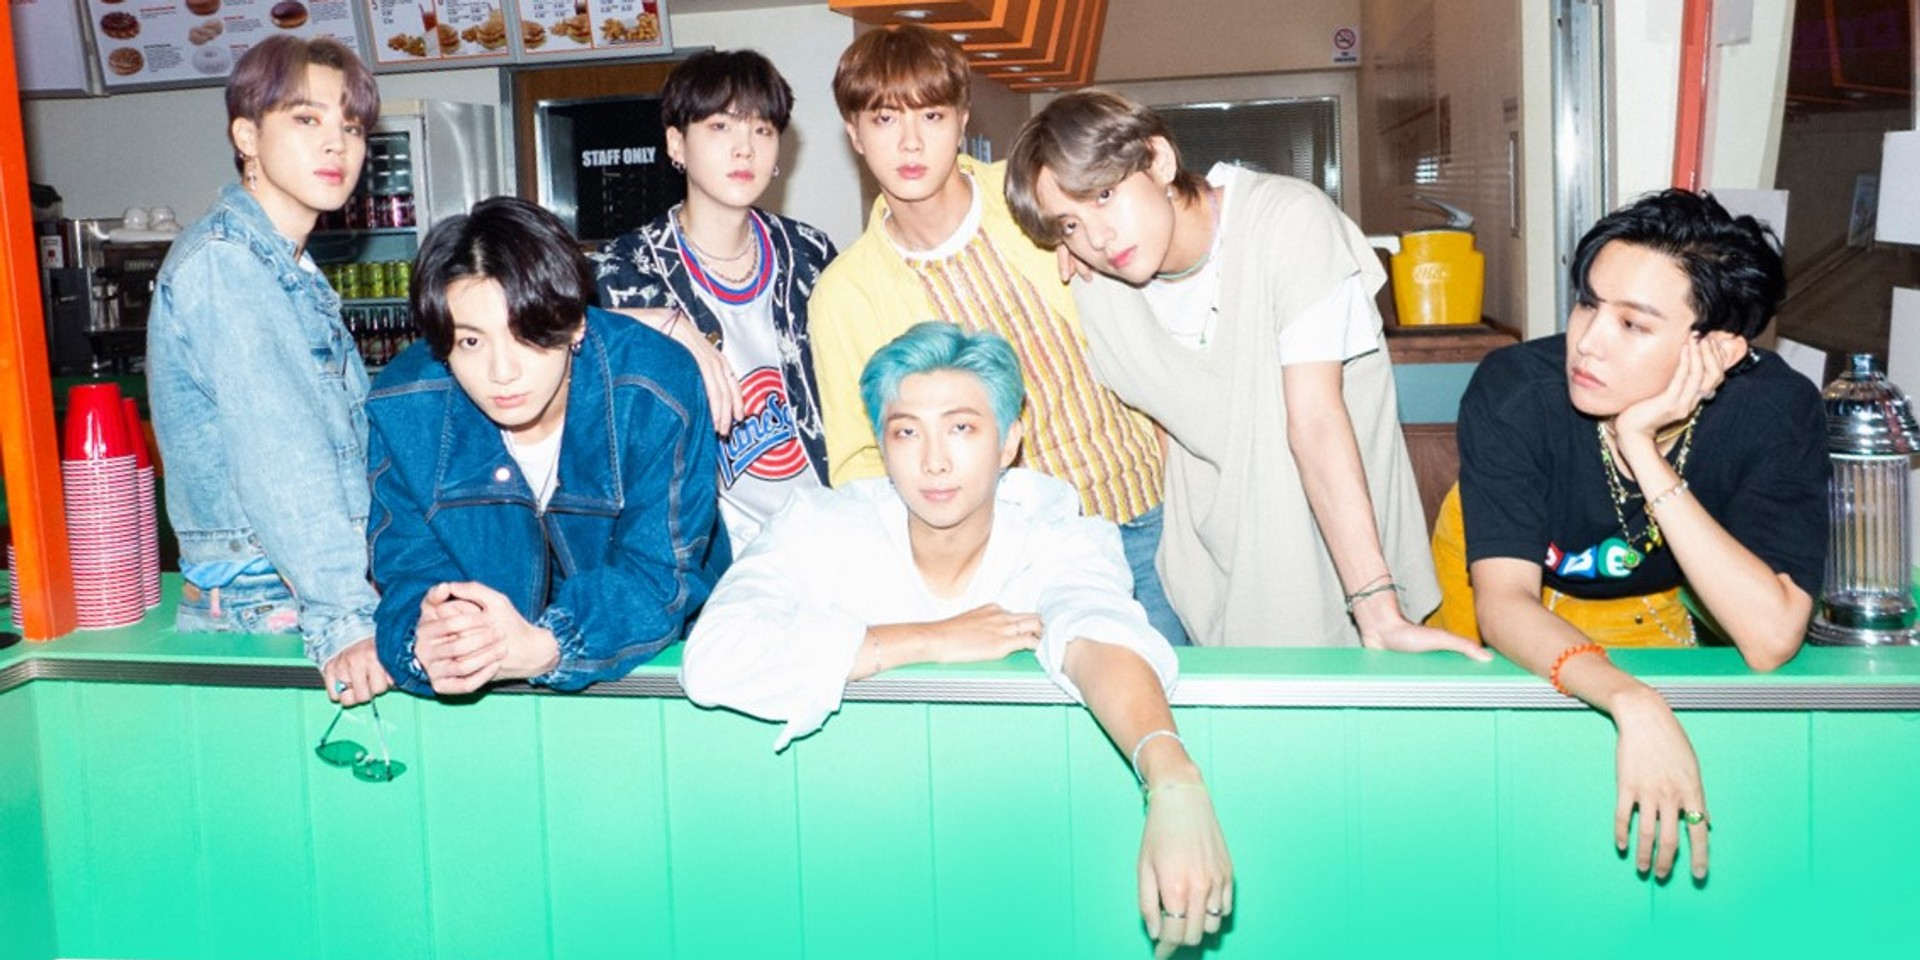 """BTS' 'Dynamite' continues to set records as 3 million fans tuned in for """"most simultaneous viewers for a music video on YouTube Premieres"""""""